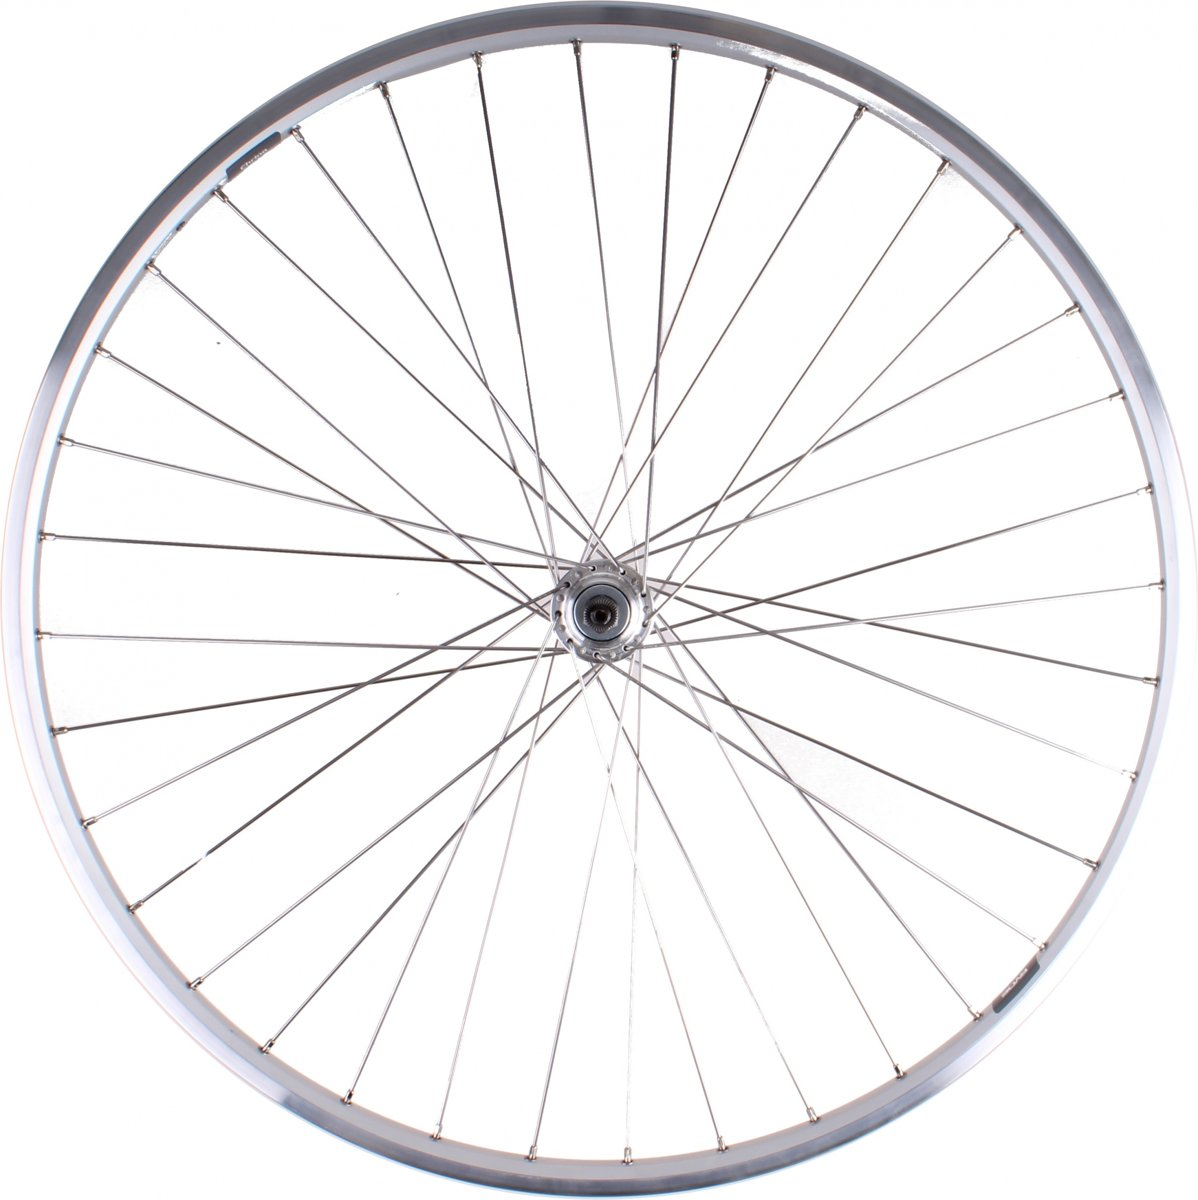 VWP achterwiel Ryde Chrina 28 inch pion 36G zilver